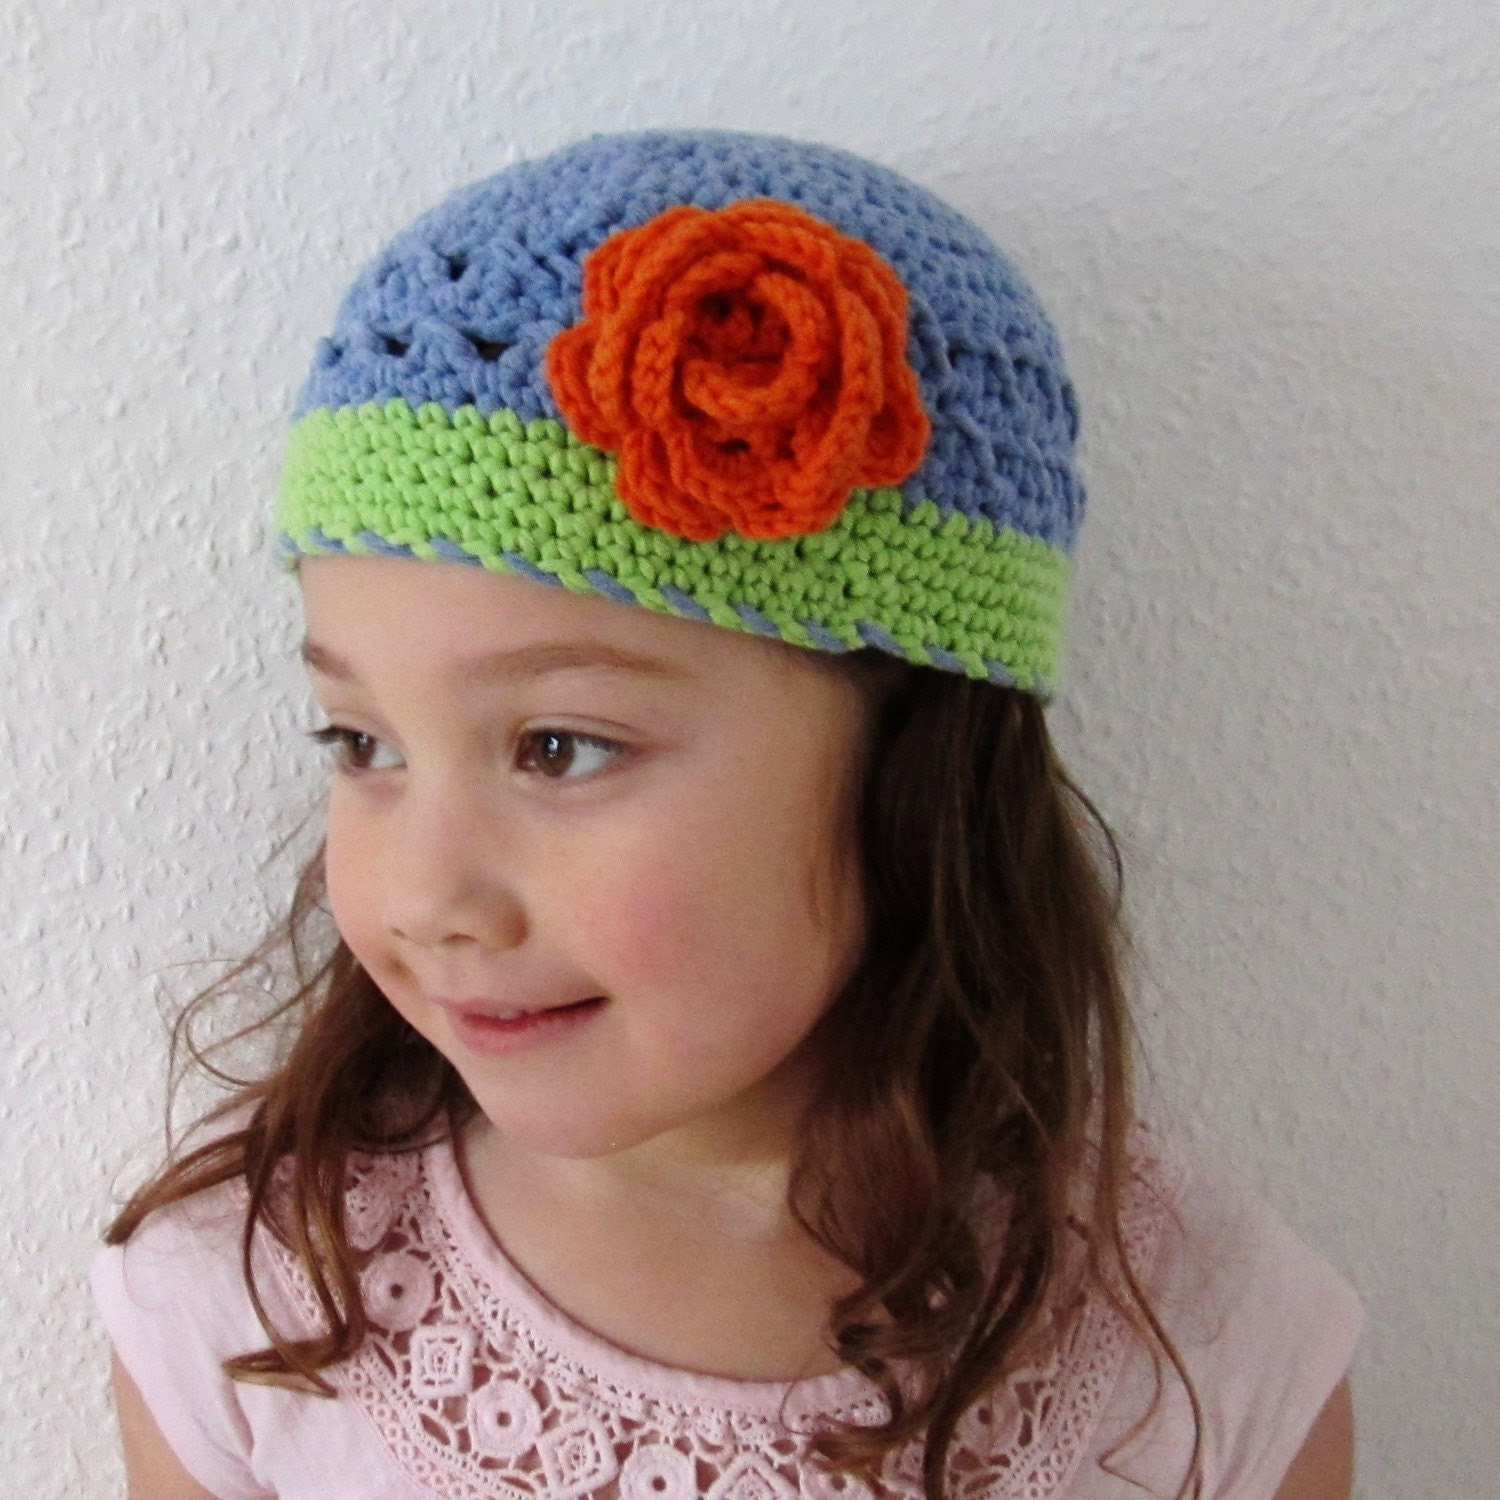 Cotton crocheted pillbox hat beanie with flower